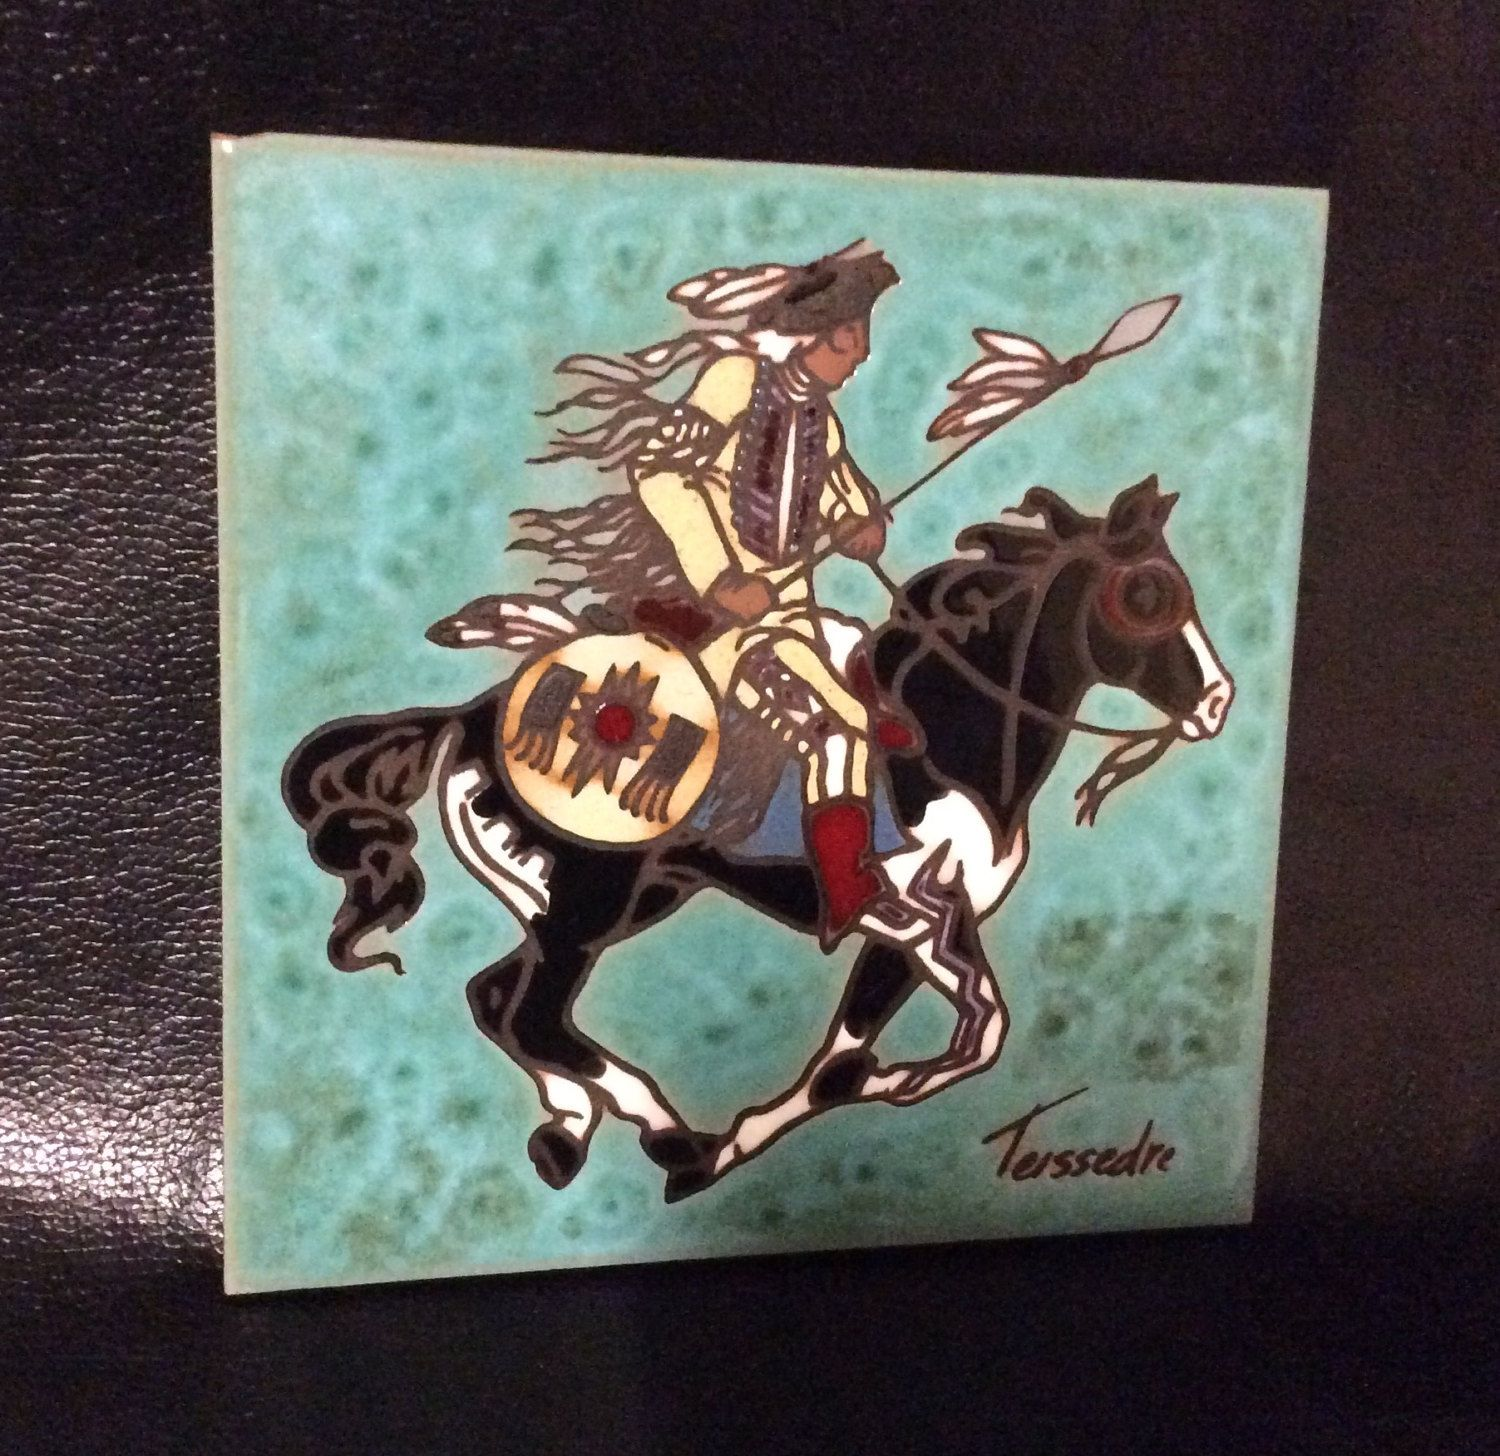 Cleo teissedre signed native american ceramic tile indian on horse cleo teissedre signed native american ceramic tile indian on horse by dublinsattic on etsy dailygadgetfo Gallery